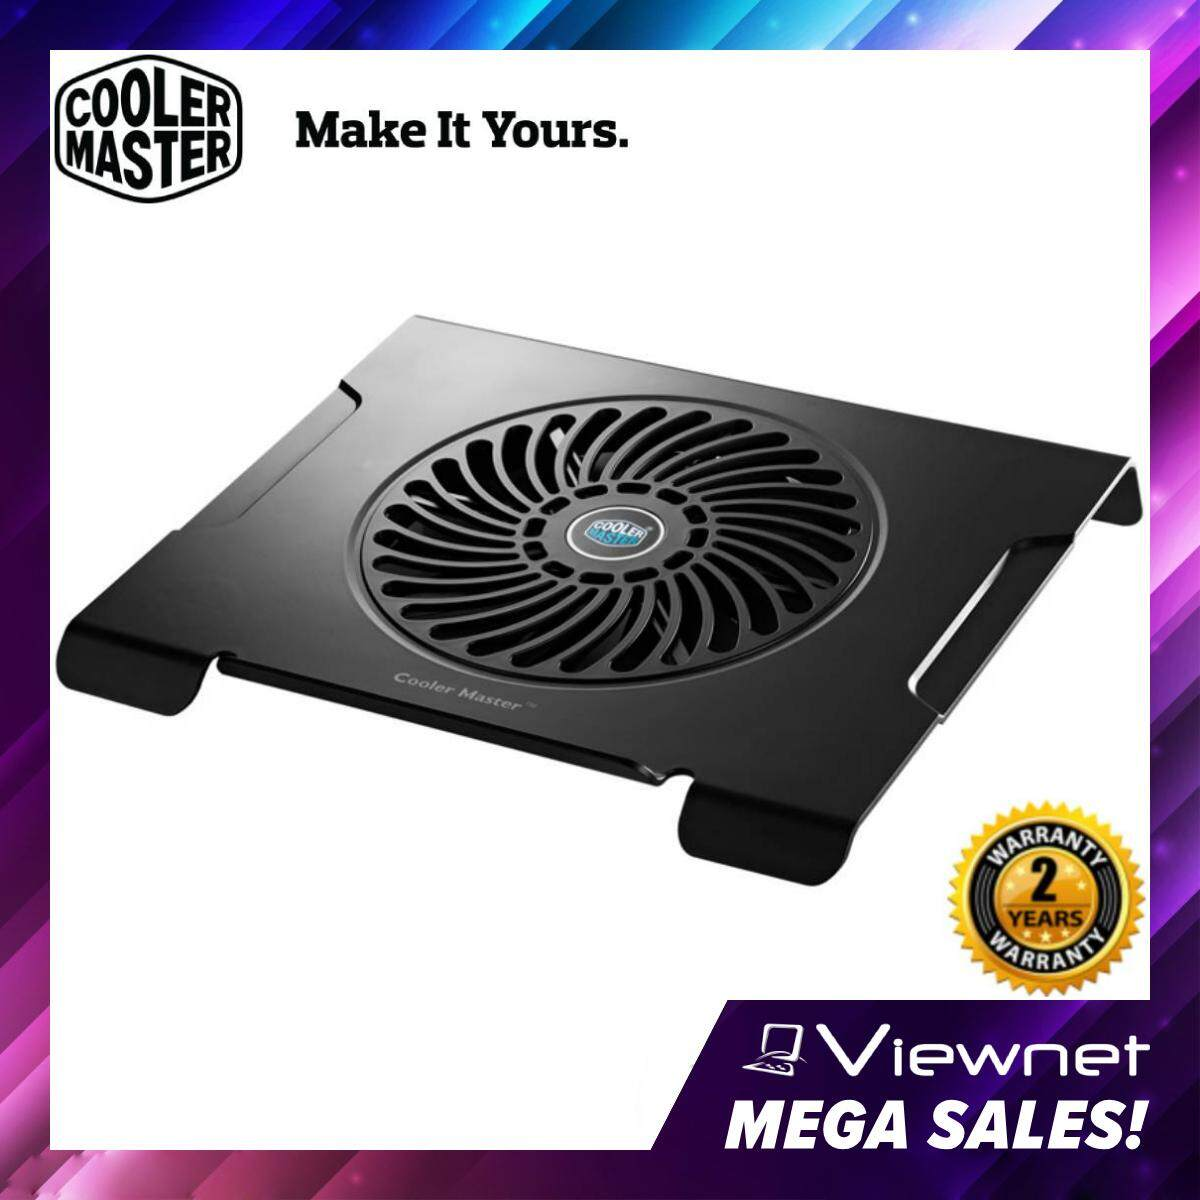 Cooler Master Notepal CMC3 Silent 200mm Fan Ergonomic Notebook Cooler for up to 15 Laptop (R9-NBC-CMC3-GP) Malaysia